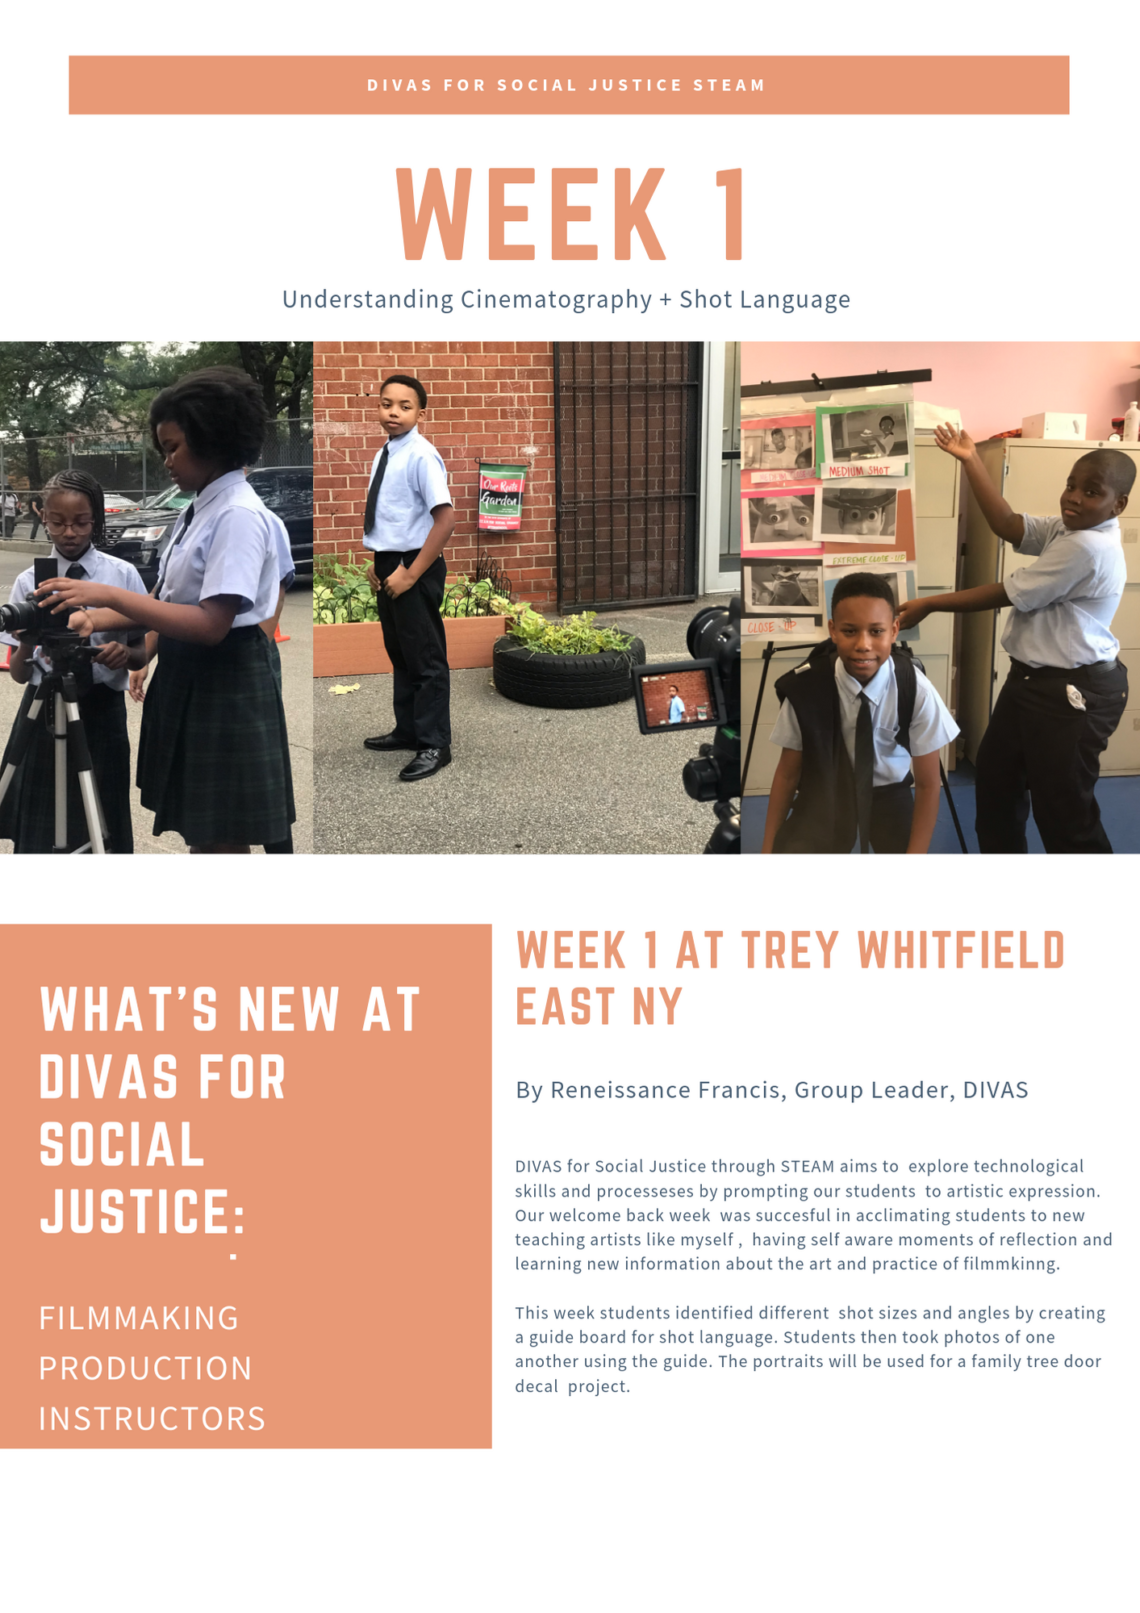 DIVAS for social justice aims to explore STEM through arts, sciences, and mathematics. We incorporate it into our lesson plans, our engaging icebreaker exercises and  conversations with the bright young faces of East New York's Trey Whitfield School.